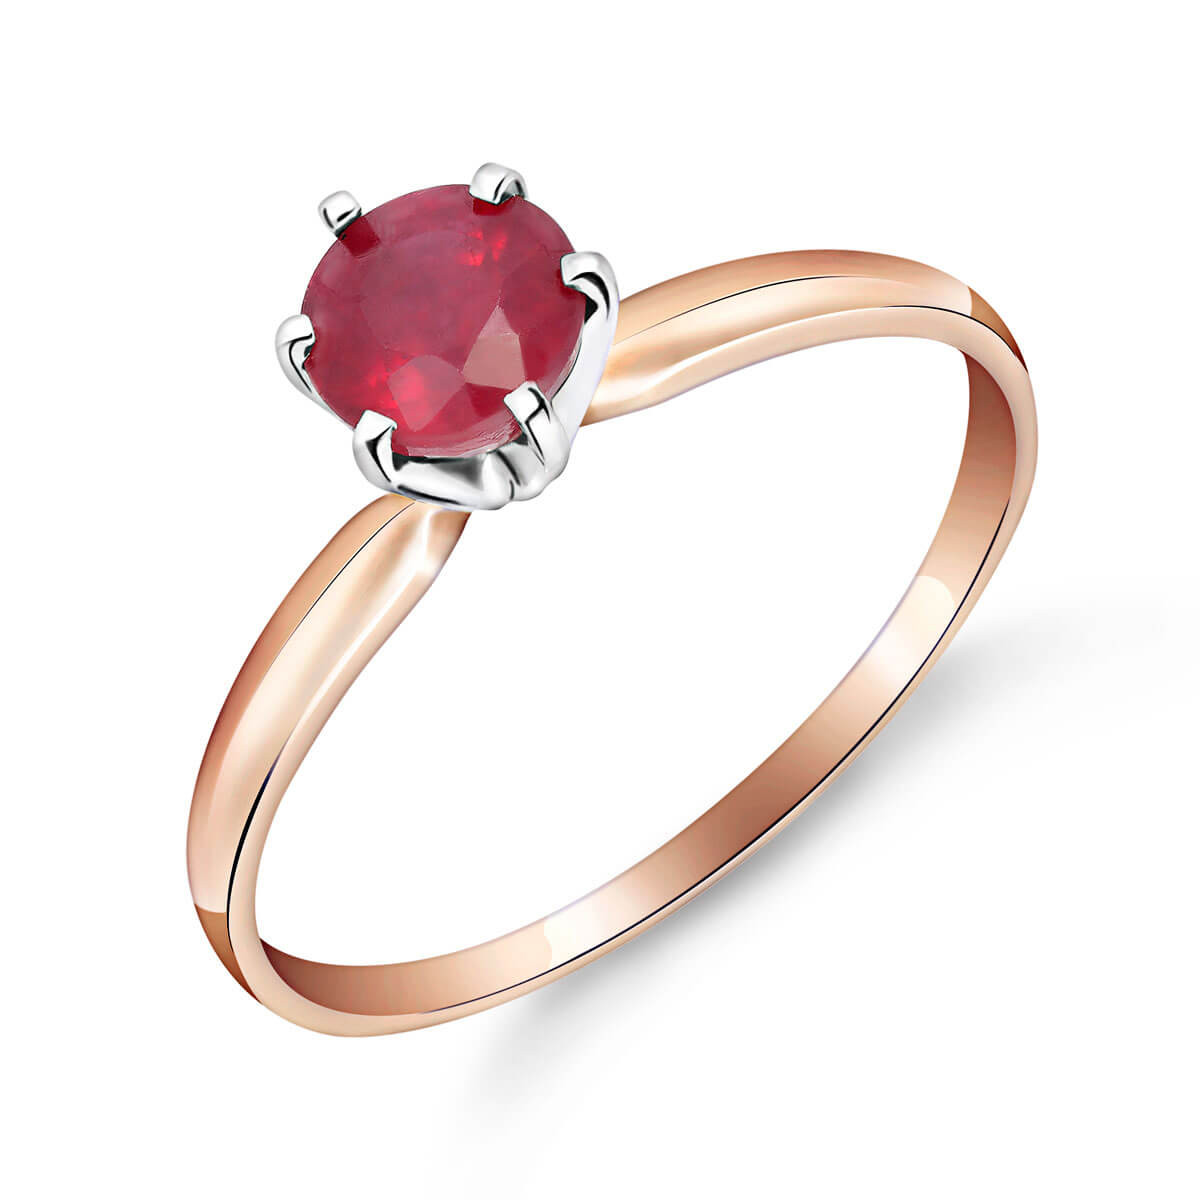 Ruby Crown Solitaire Ring 0.65 ct in 9ct Rose Gold